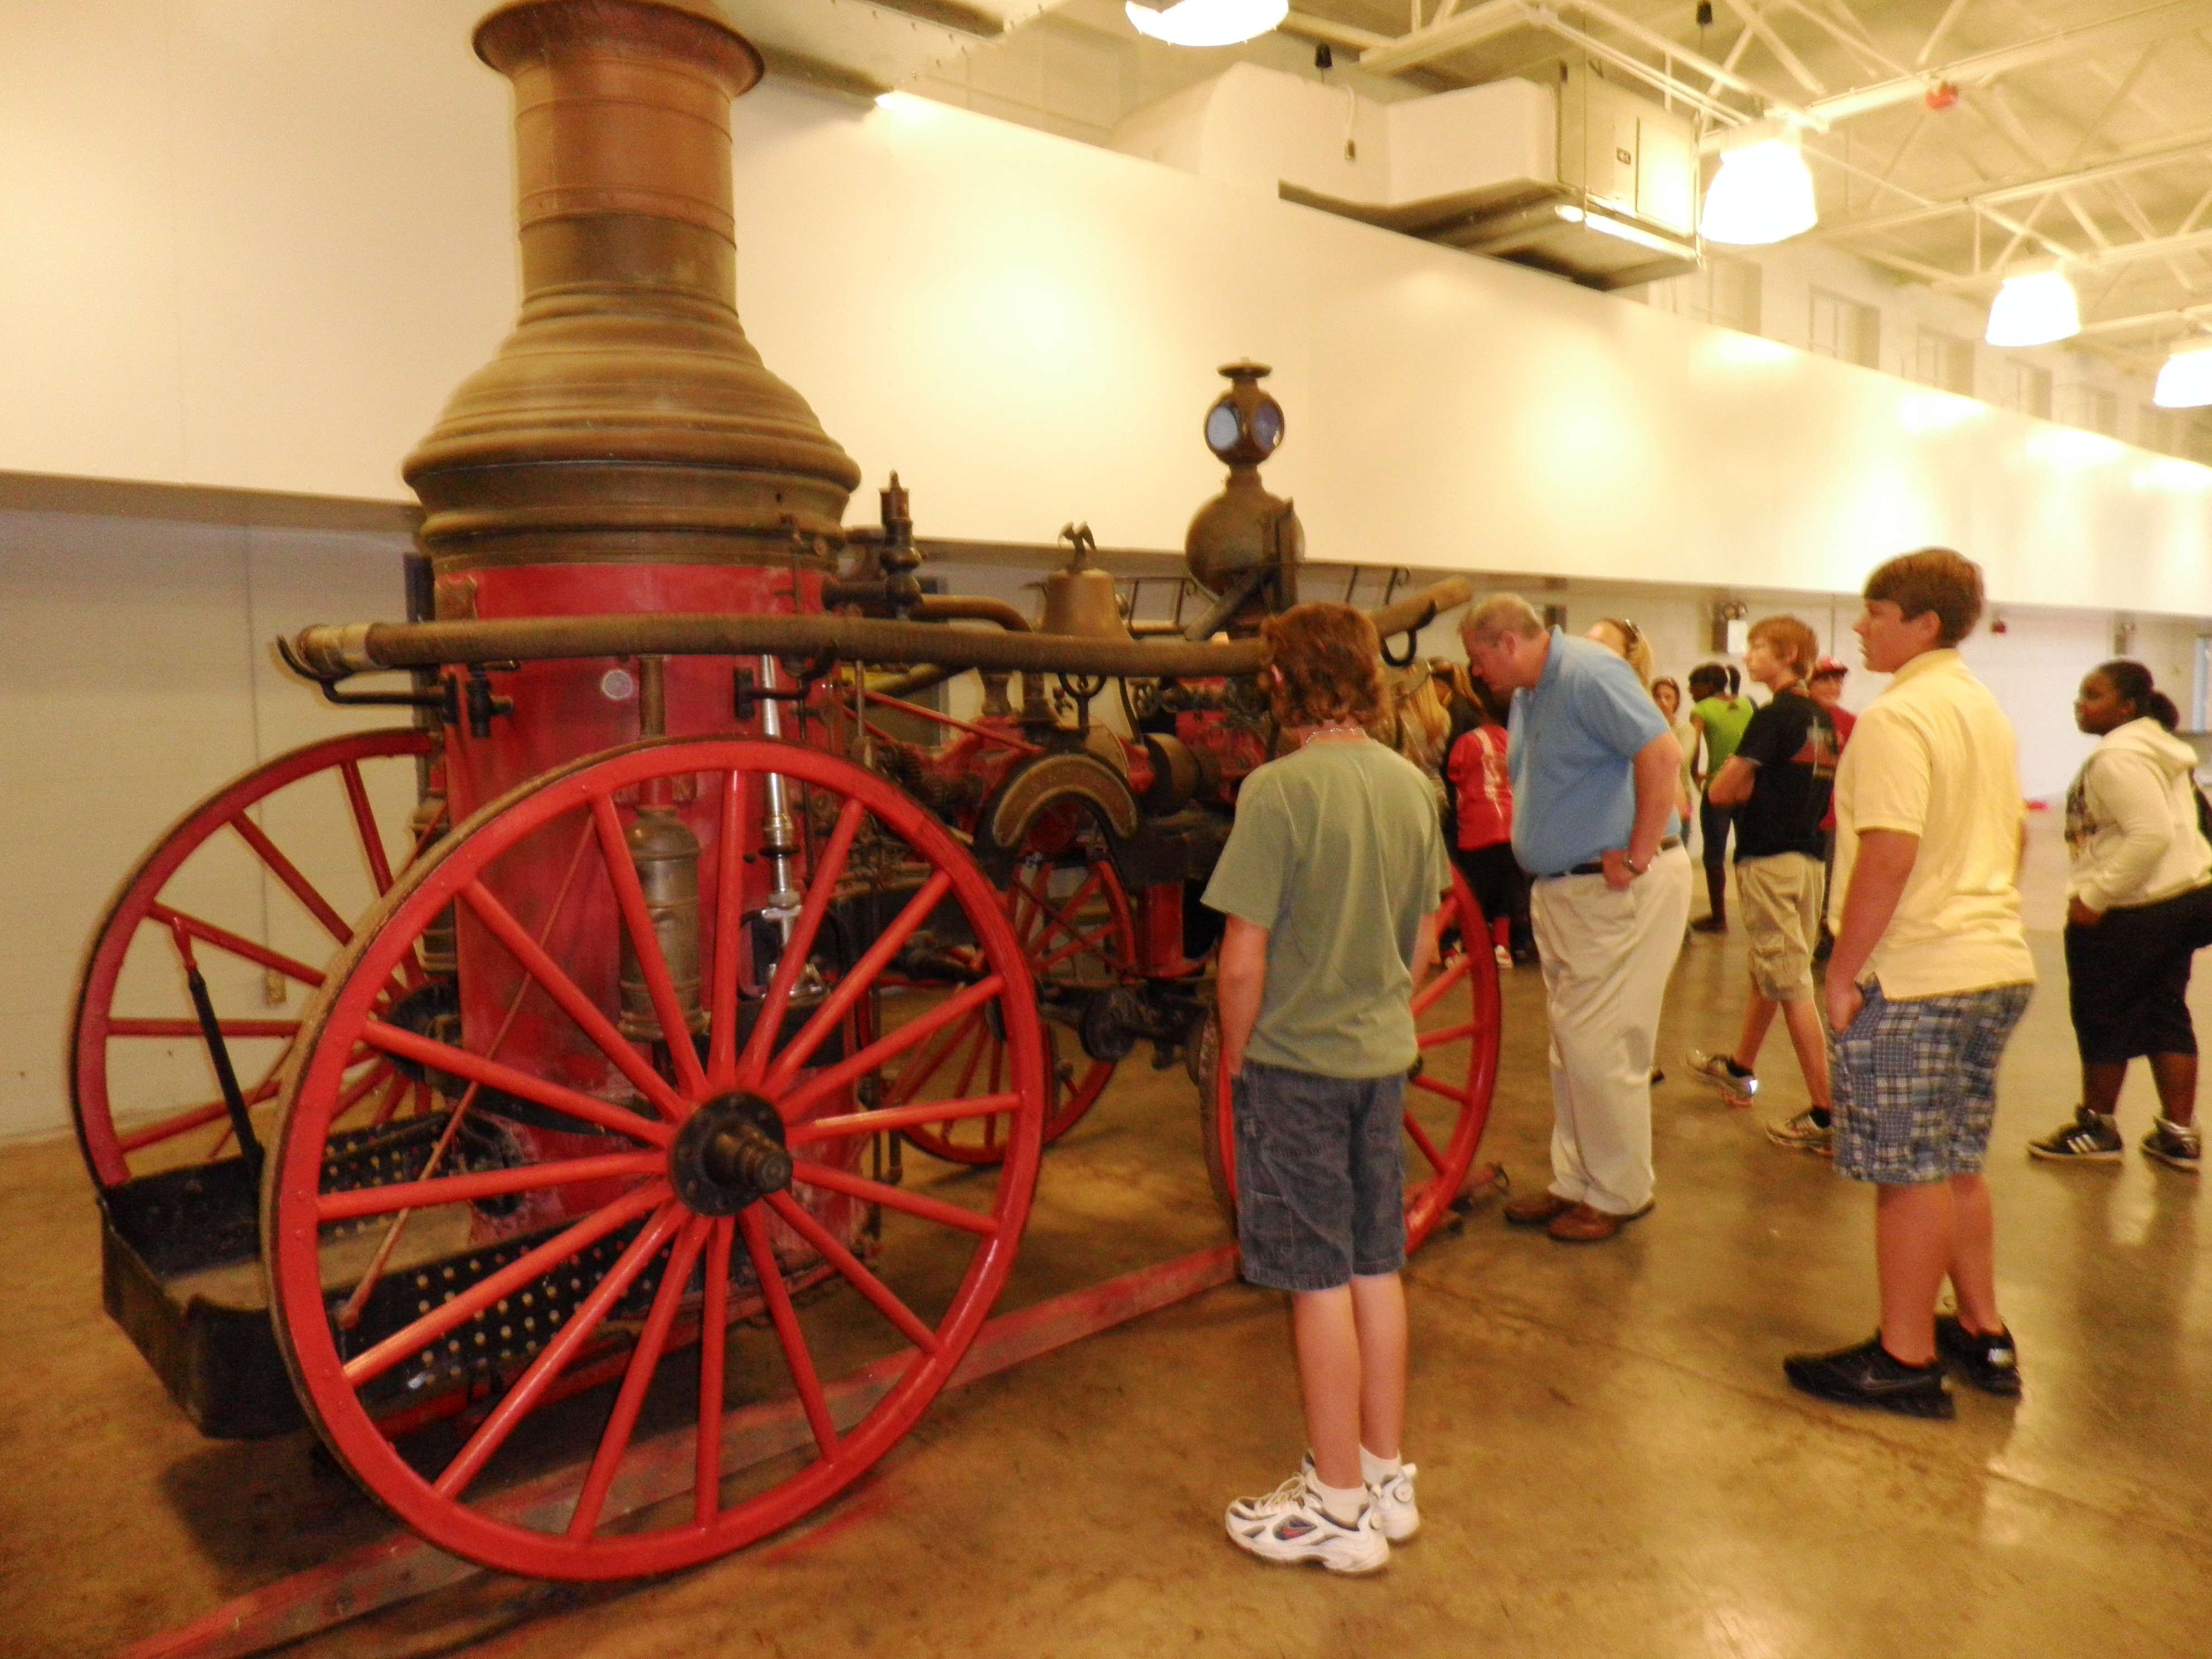 Visitors examine an antique fire engine in Hawkinsville, Georgia